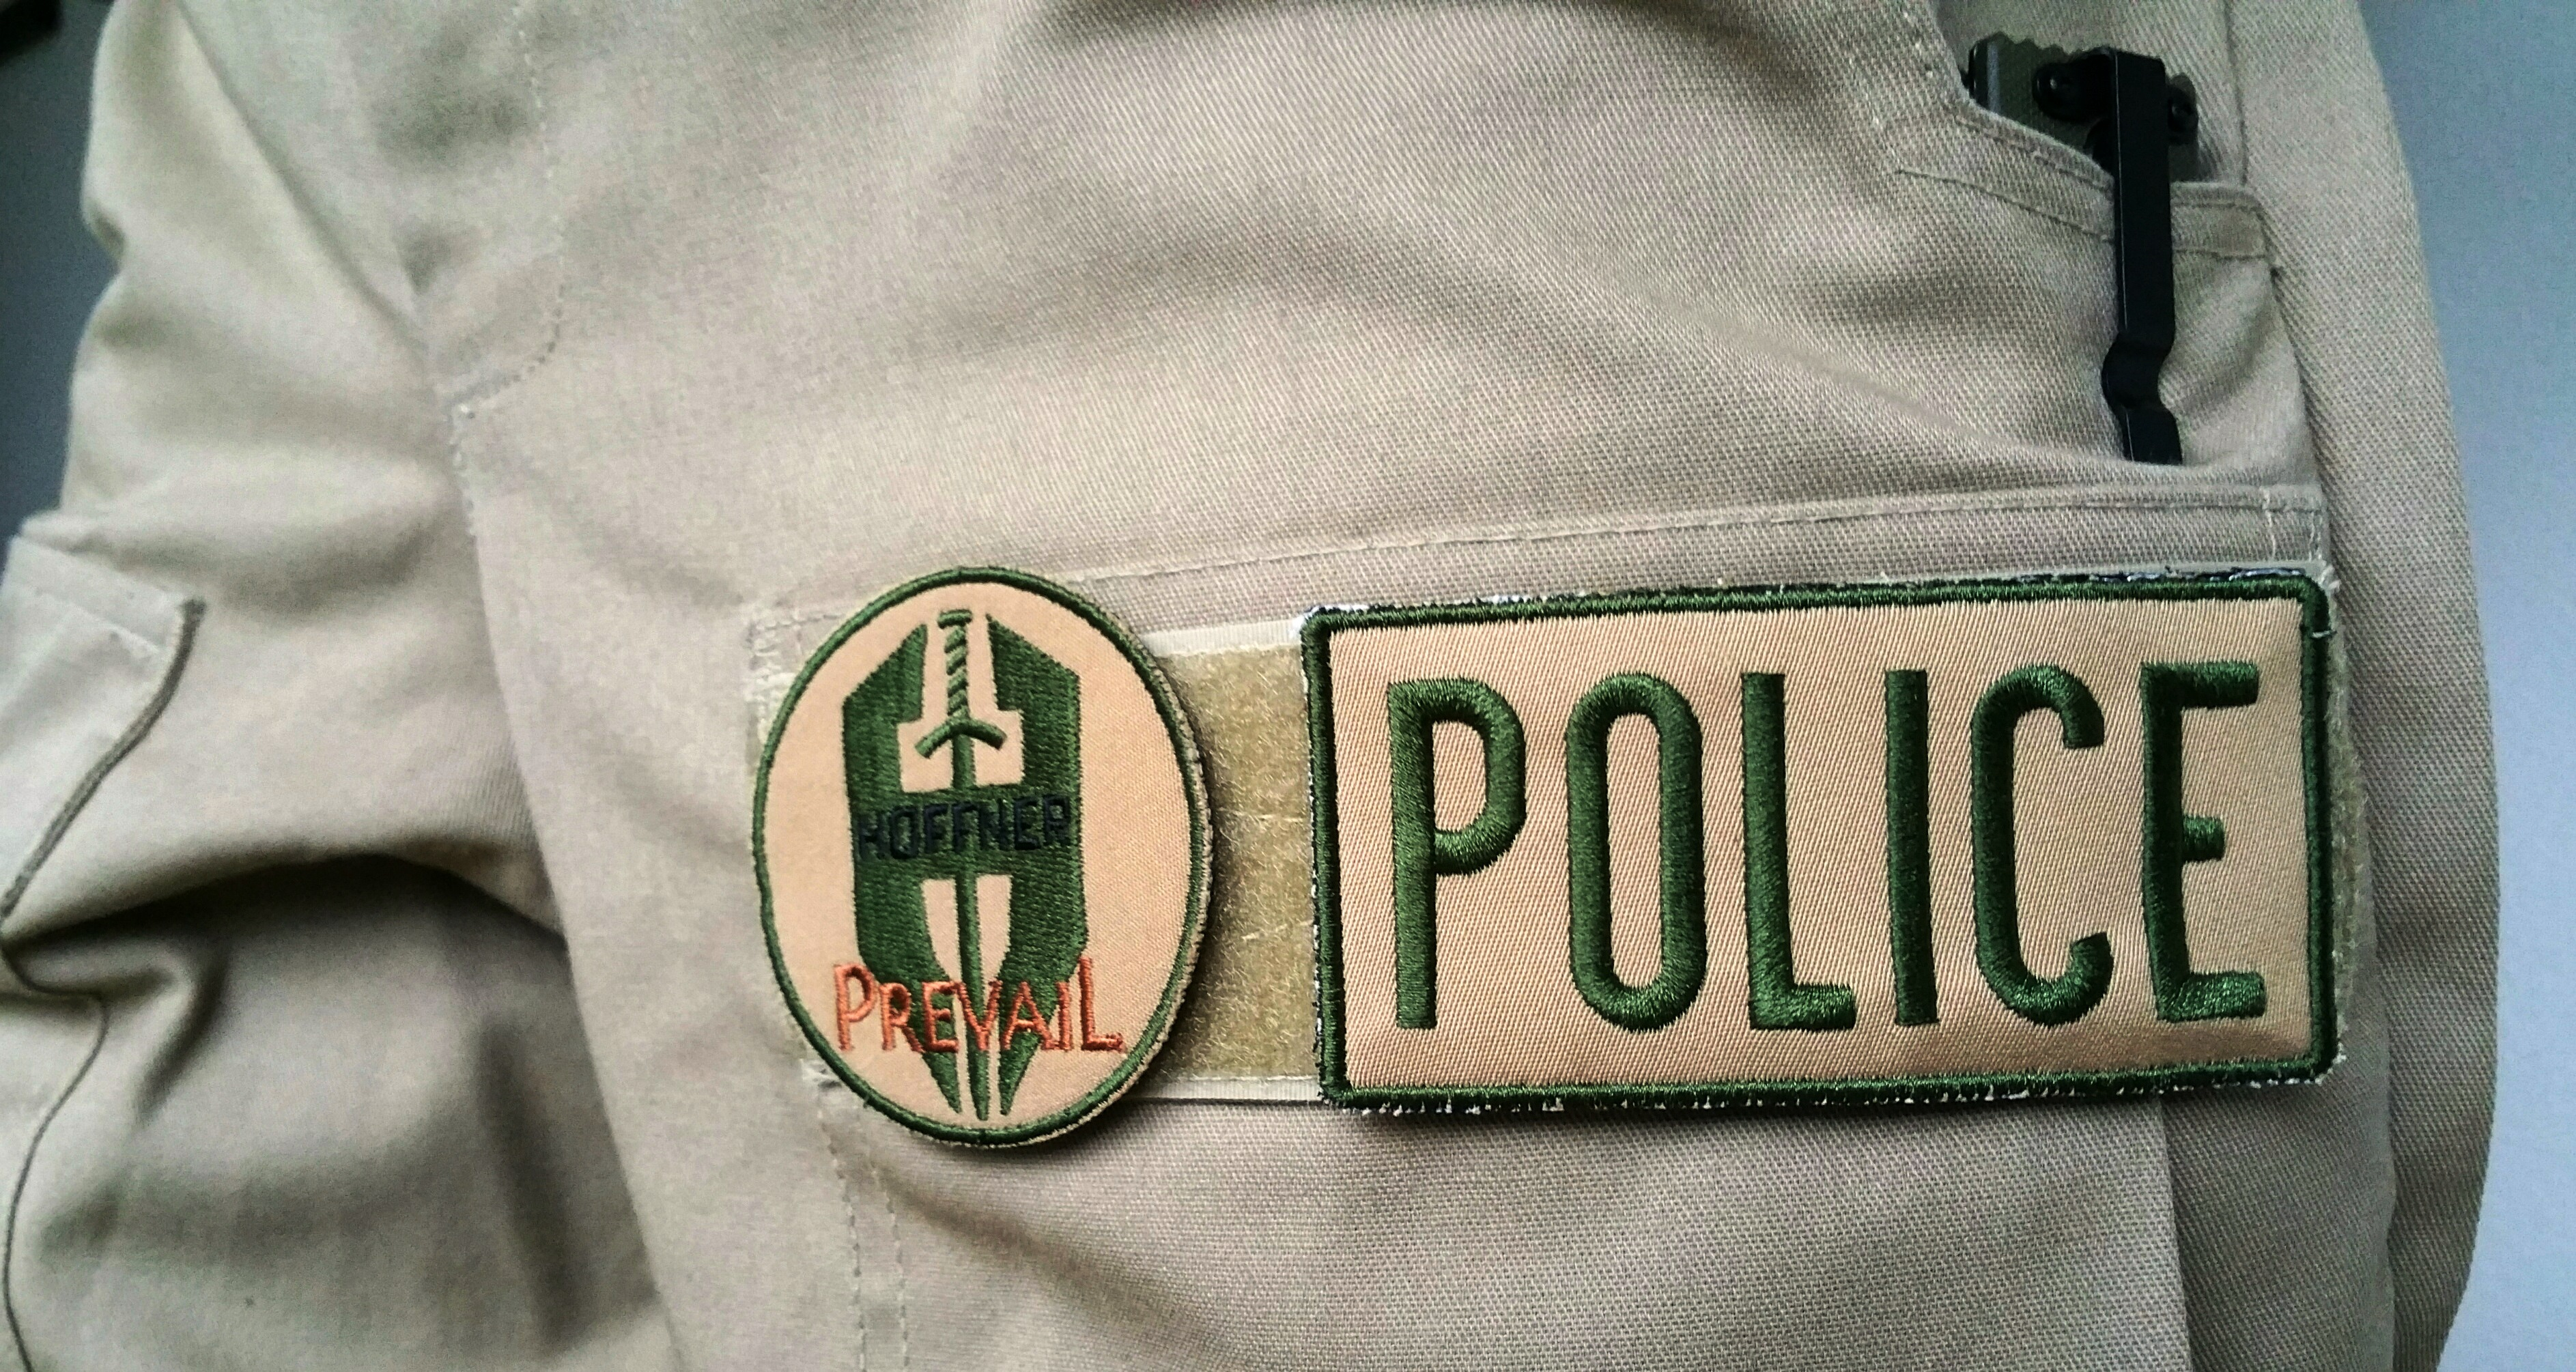 Police Khaki Patch on ATA